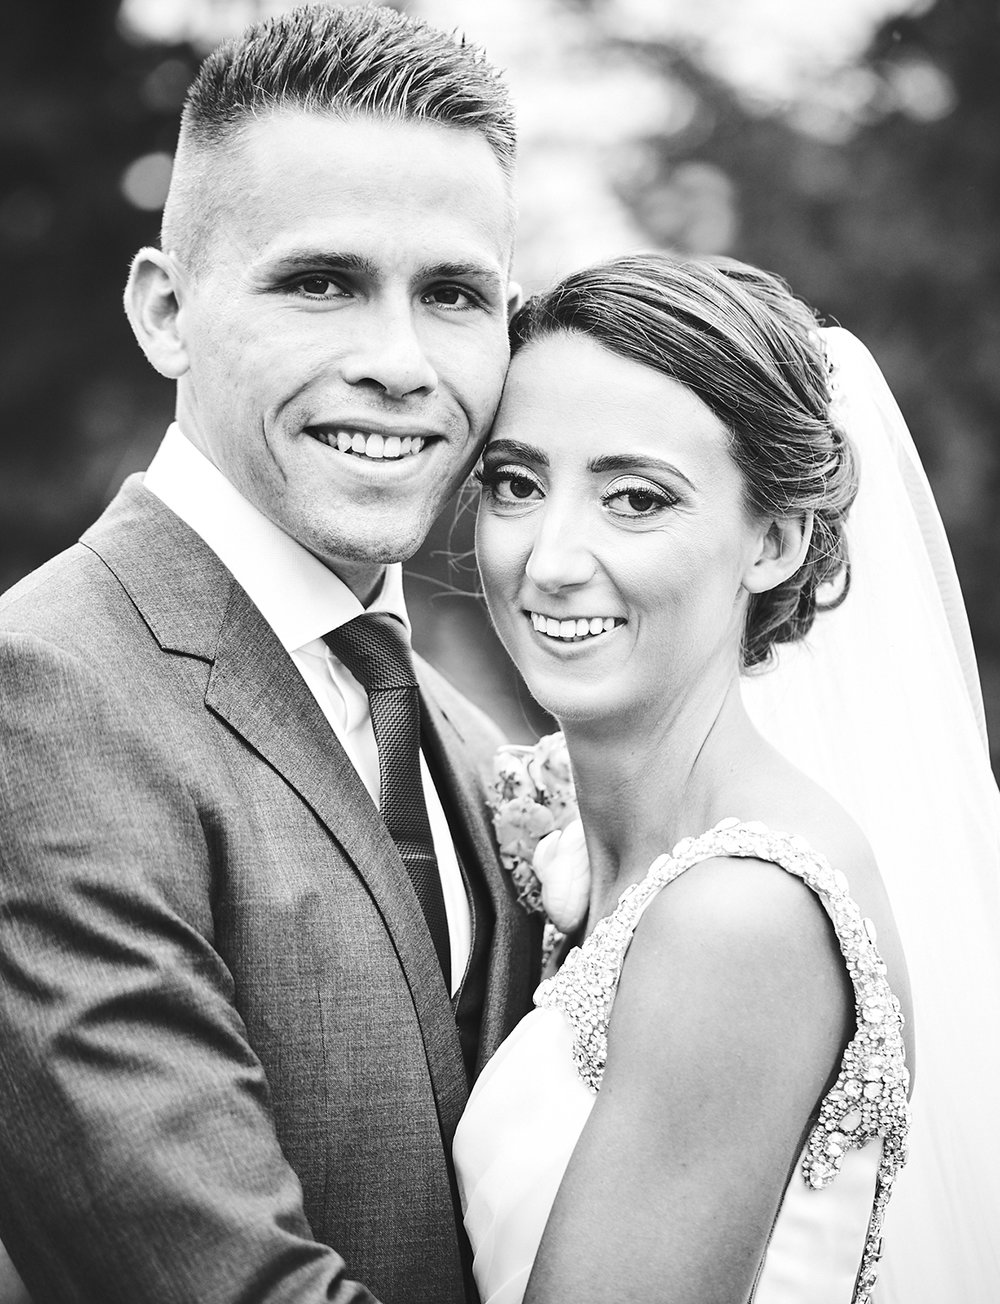 180819_TheRylandInnWeddingPhotography_TheRylandInnWeddingPhotographer_By_BrJohnsonWeddings_0063.jpg